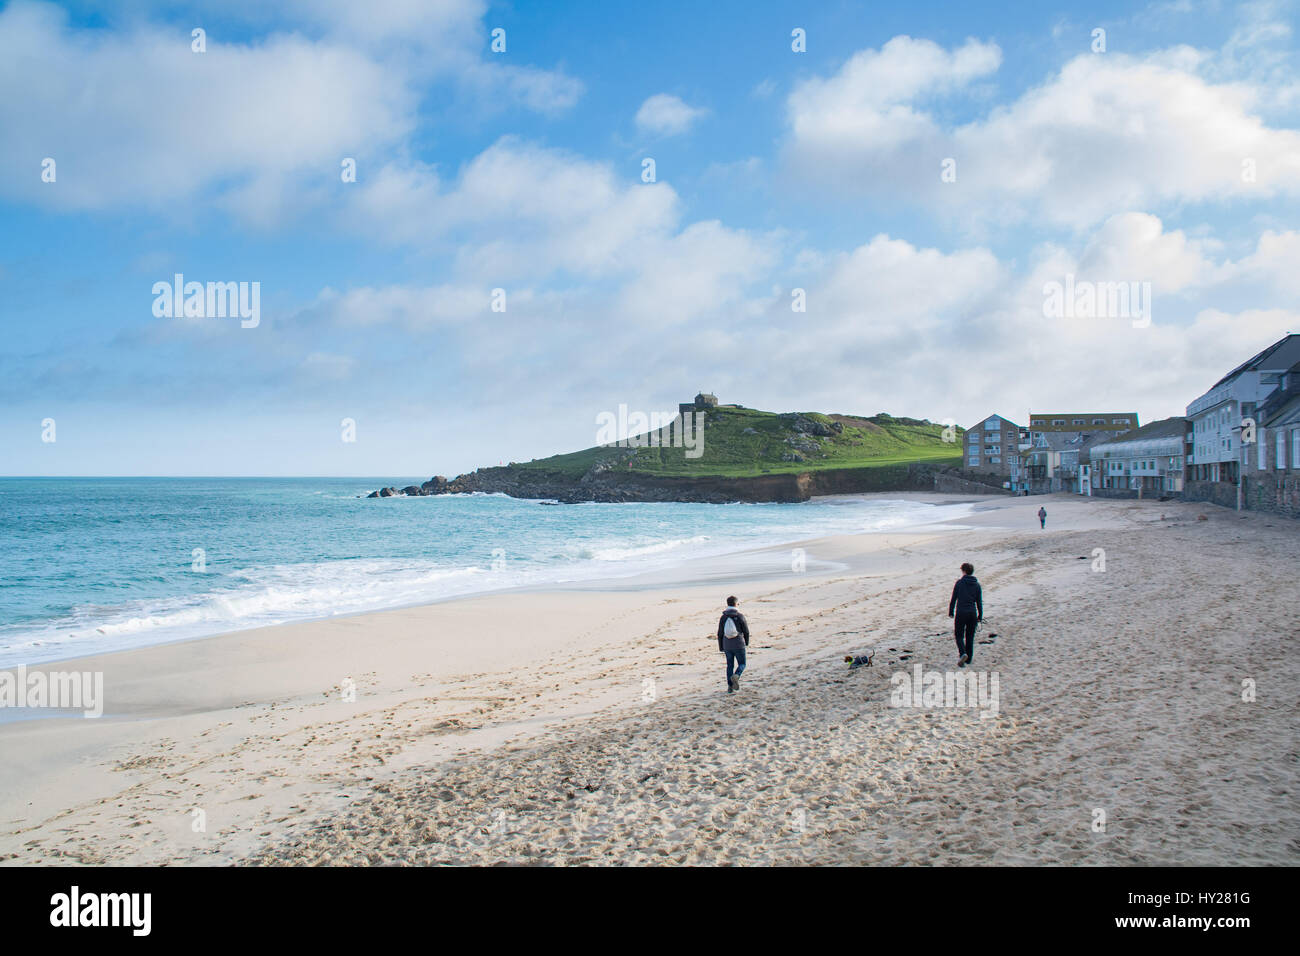 St Ives, Cornwall, UK. 31st March 2017. UK Weather. Sunny morning and great surf conditions at St Ives this morning. - Stock Image